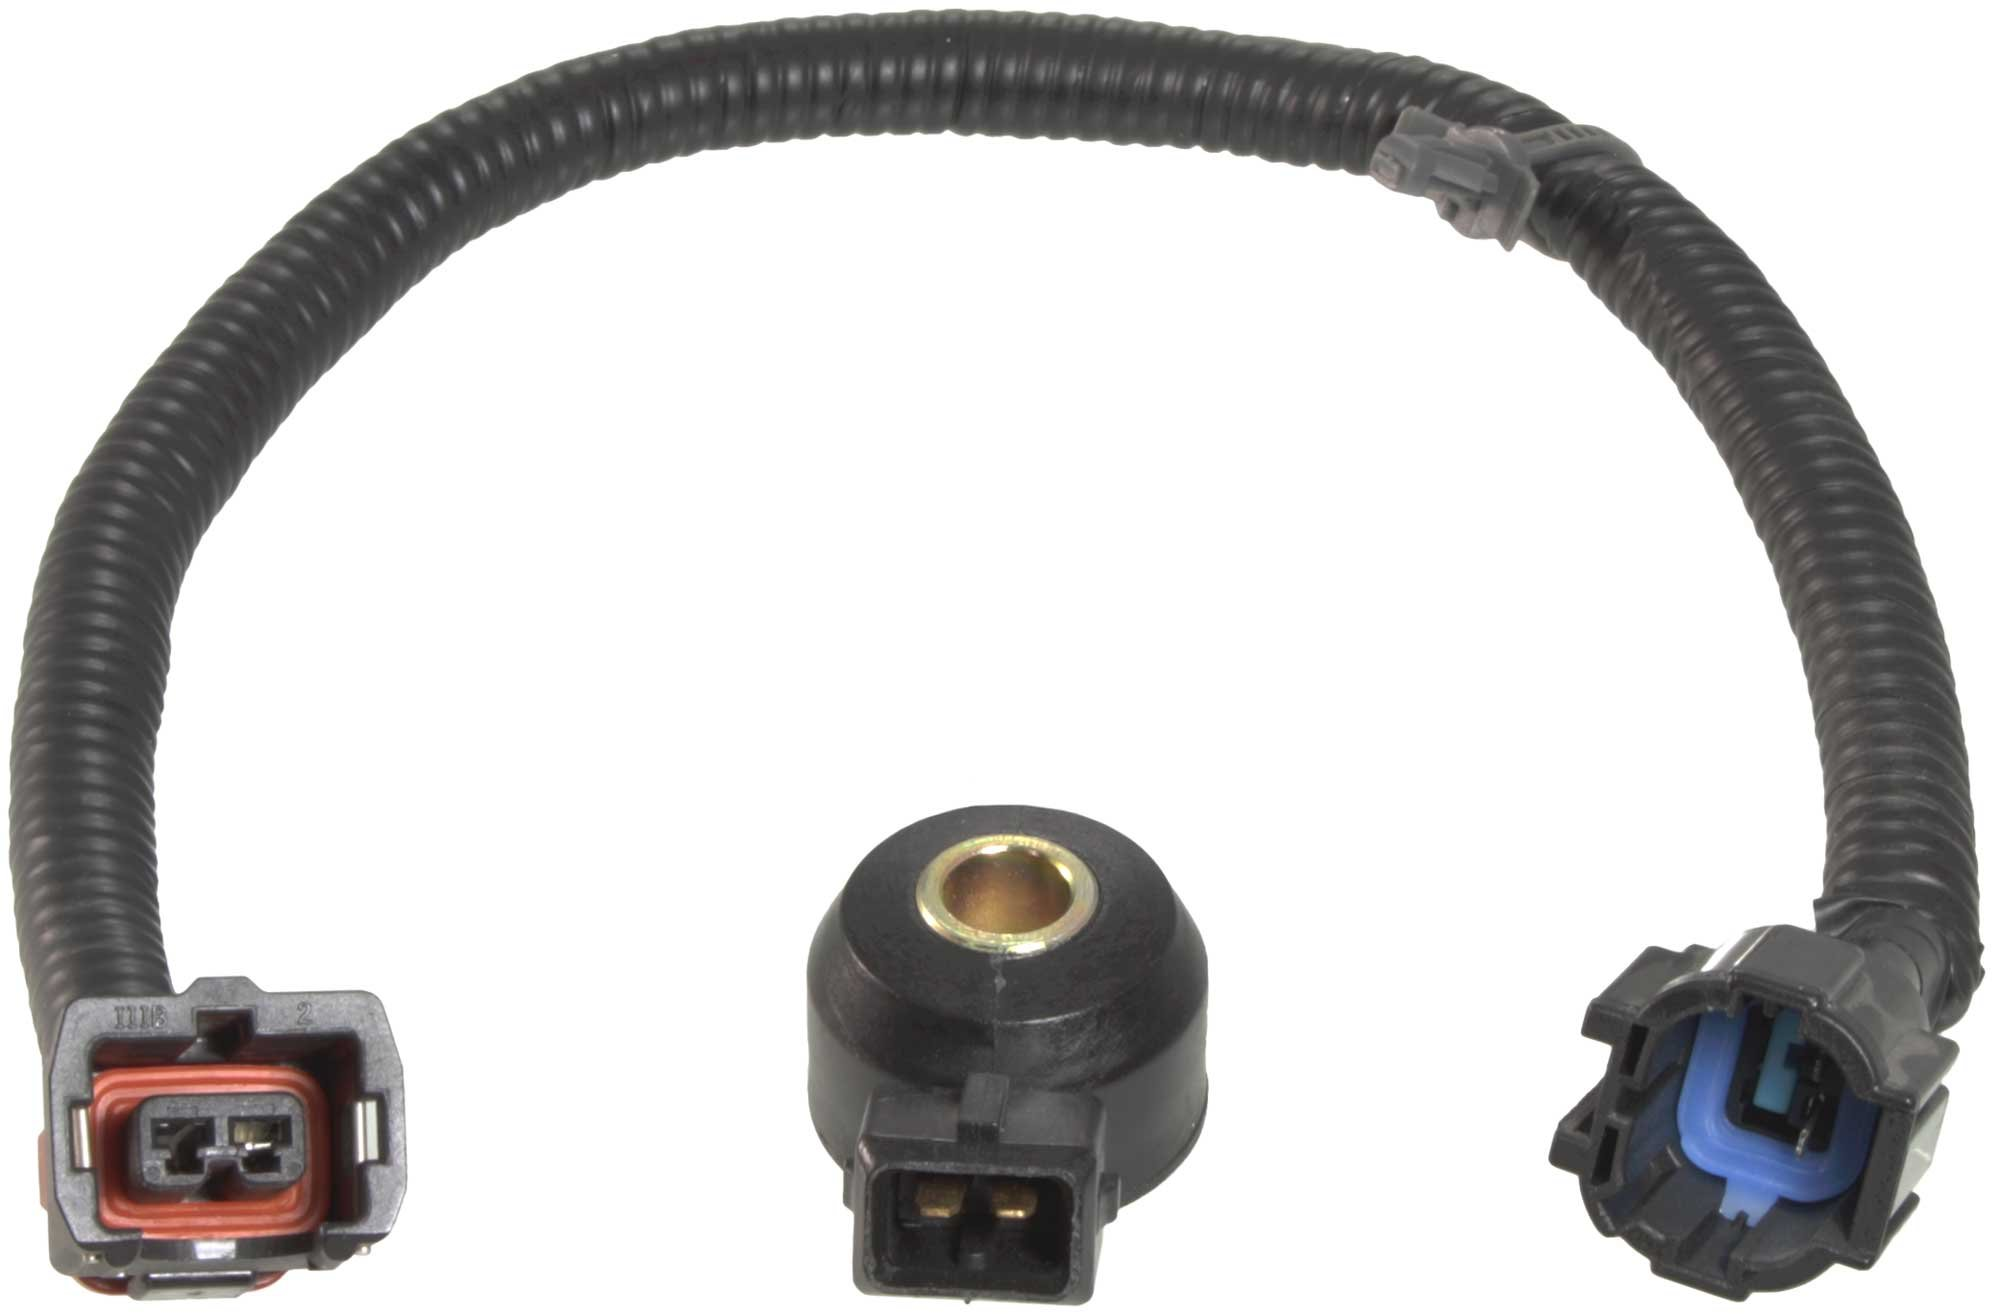 APDTY 028252 Knock Sensor With New Wiring Harness Pigtail Connector Fits Select 1990-2002 Nissan or Infiniti Mode ls Listed In The Compatibility Chart (Replaces 2407931U01, 2206030P00)